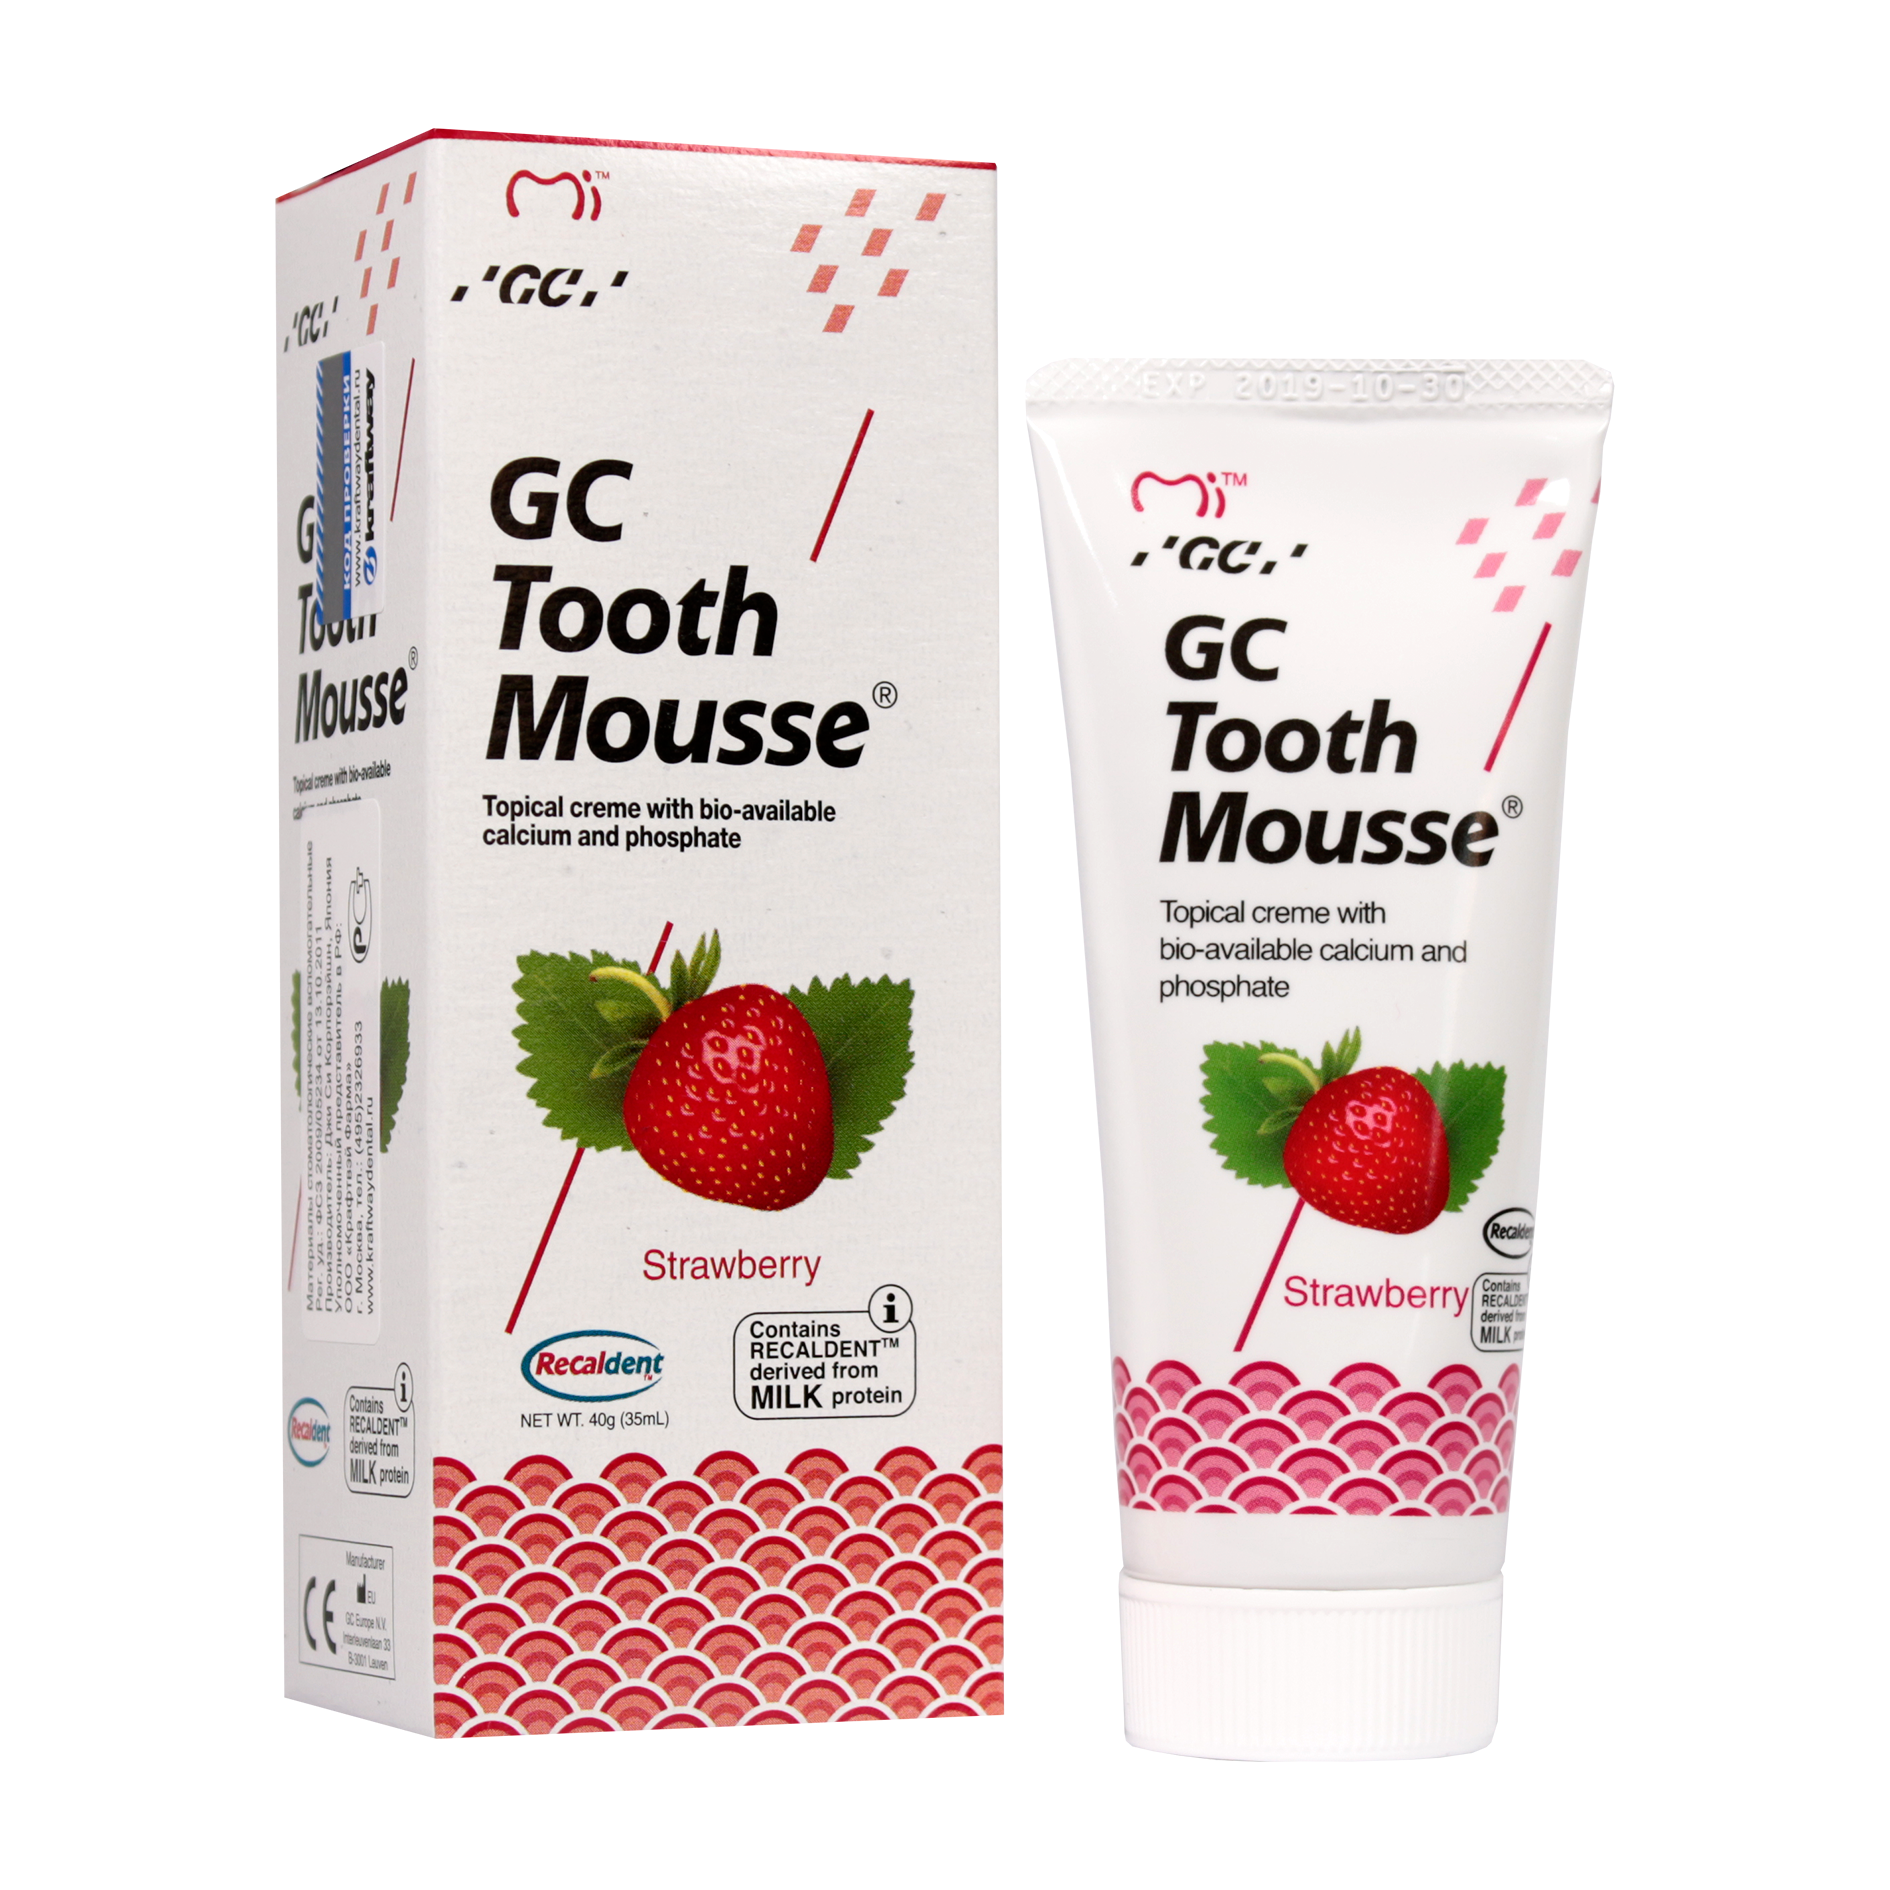 GC Tooth Mousse Tooth Mousse Клубника